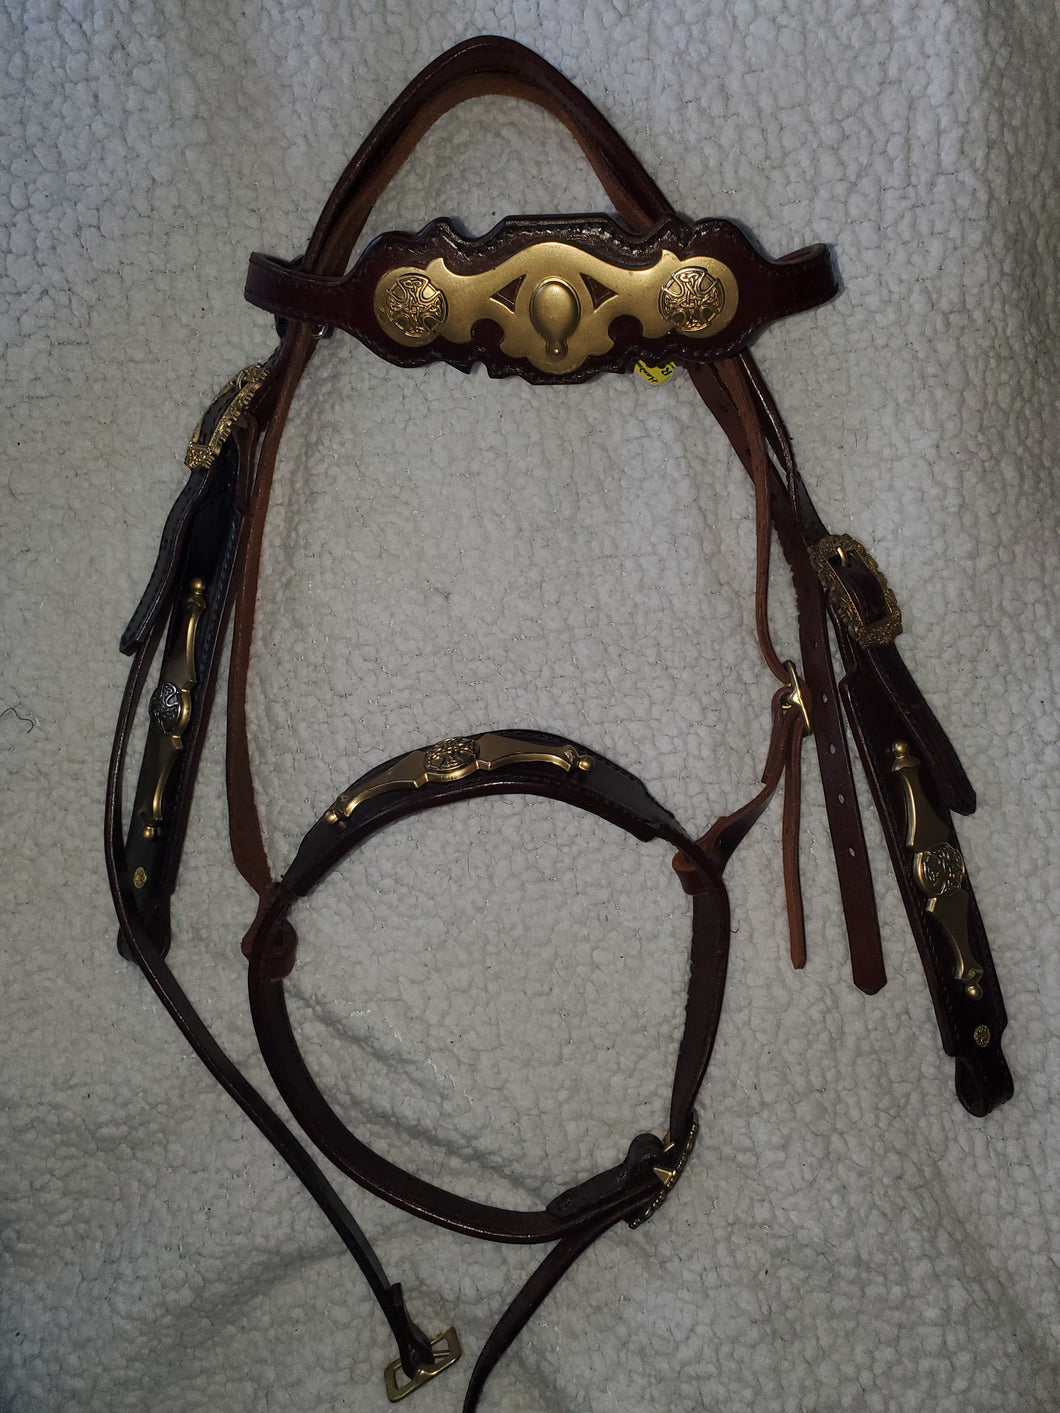 Handmade Celtic Style Headstall with Noseband - WOW!